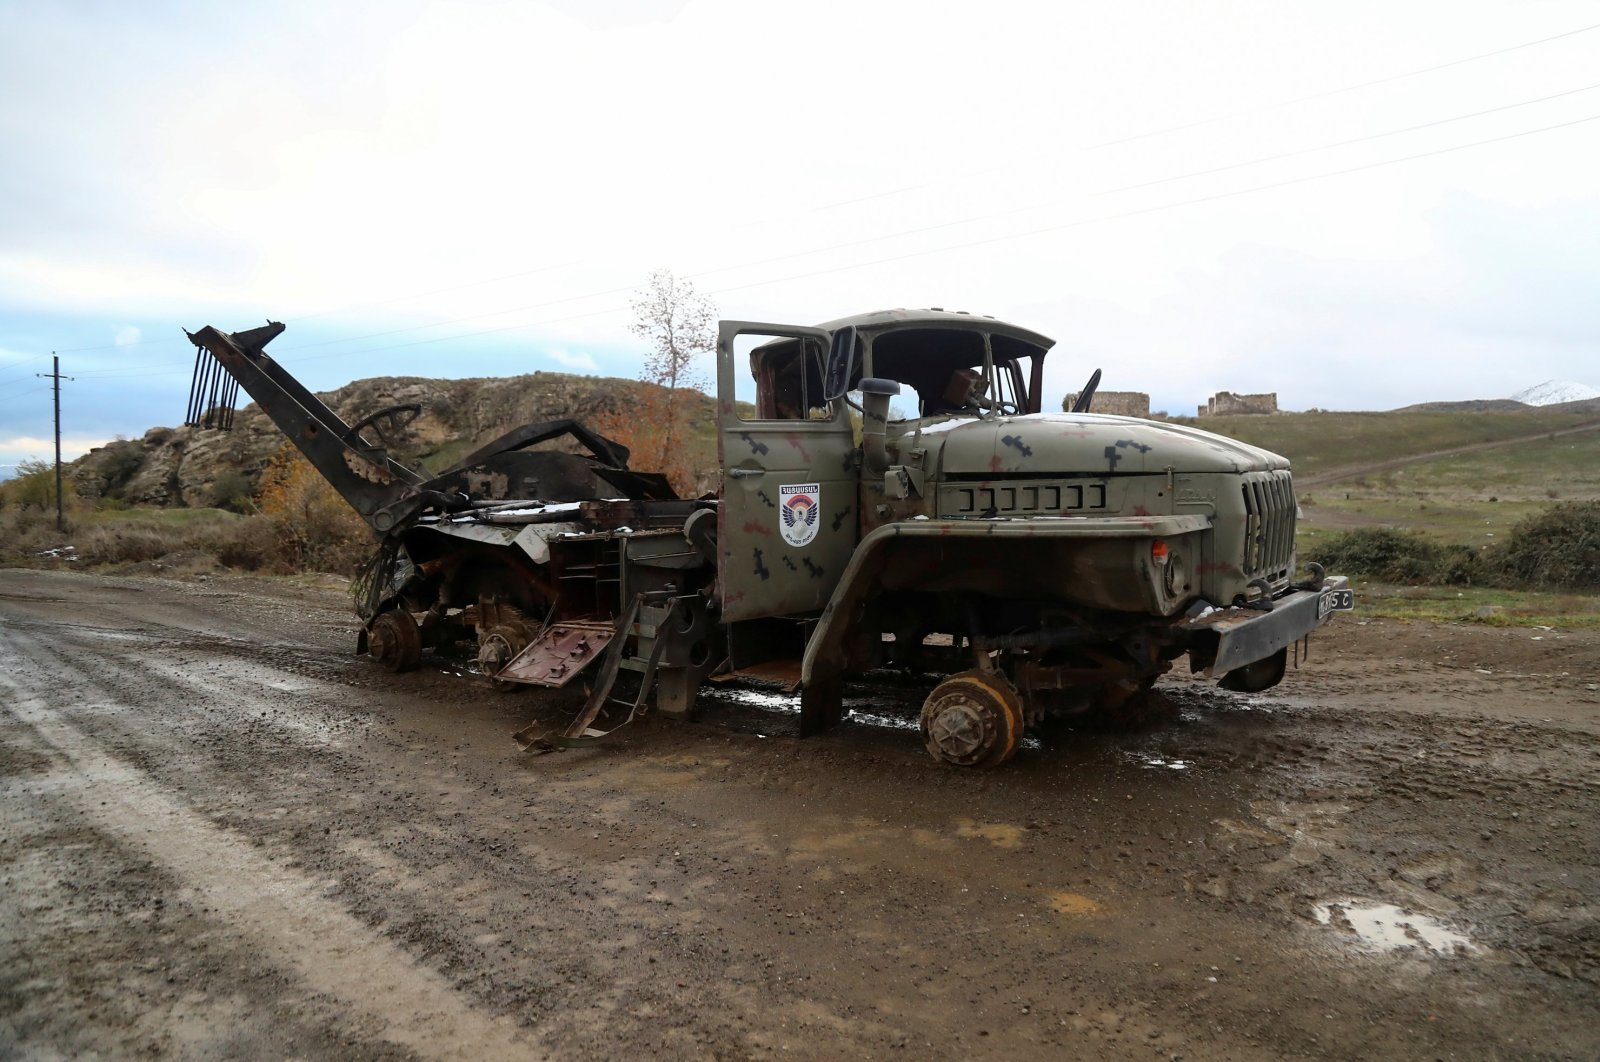 A damaged truck belonging to Armenian forces in an area that came under the control of Azerbaijan's troops following a military conflict over Nagorno-Karabakh, in Jabrayil District, Azerbaijan, December 7, 2020. (Reuters Photo)